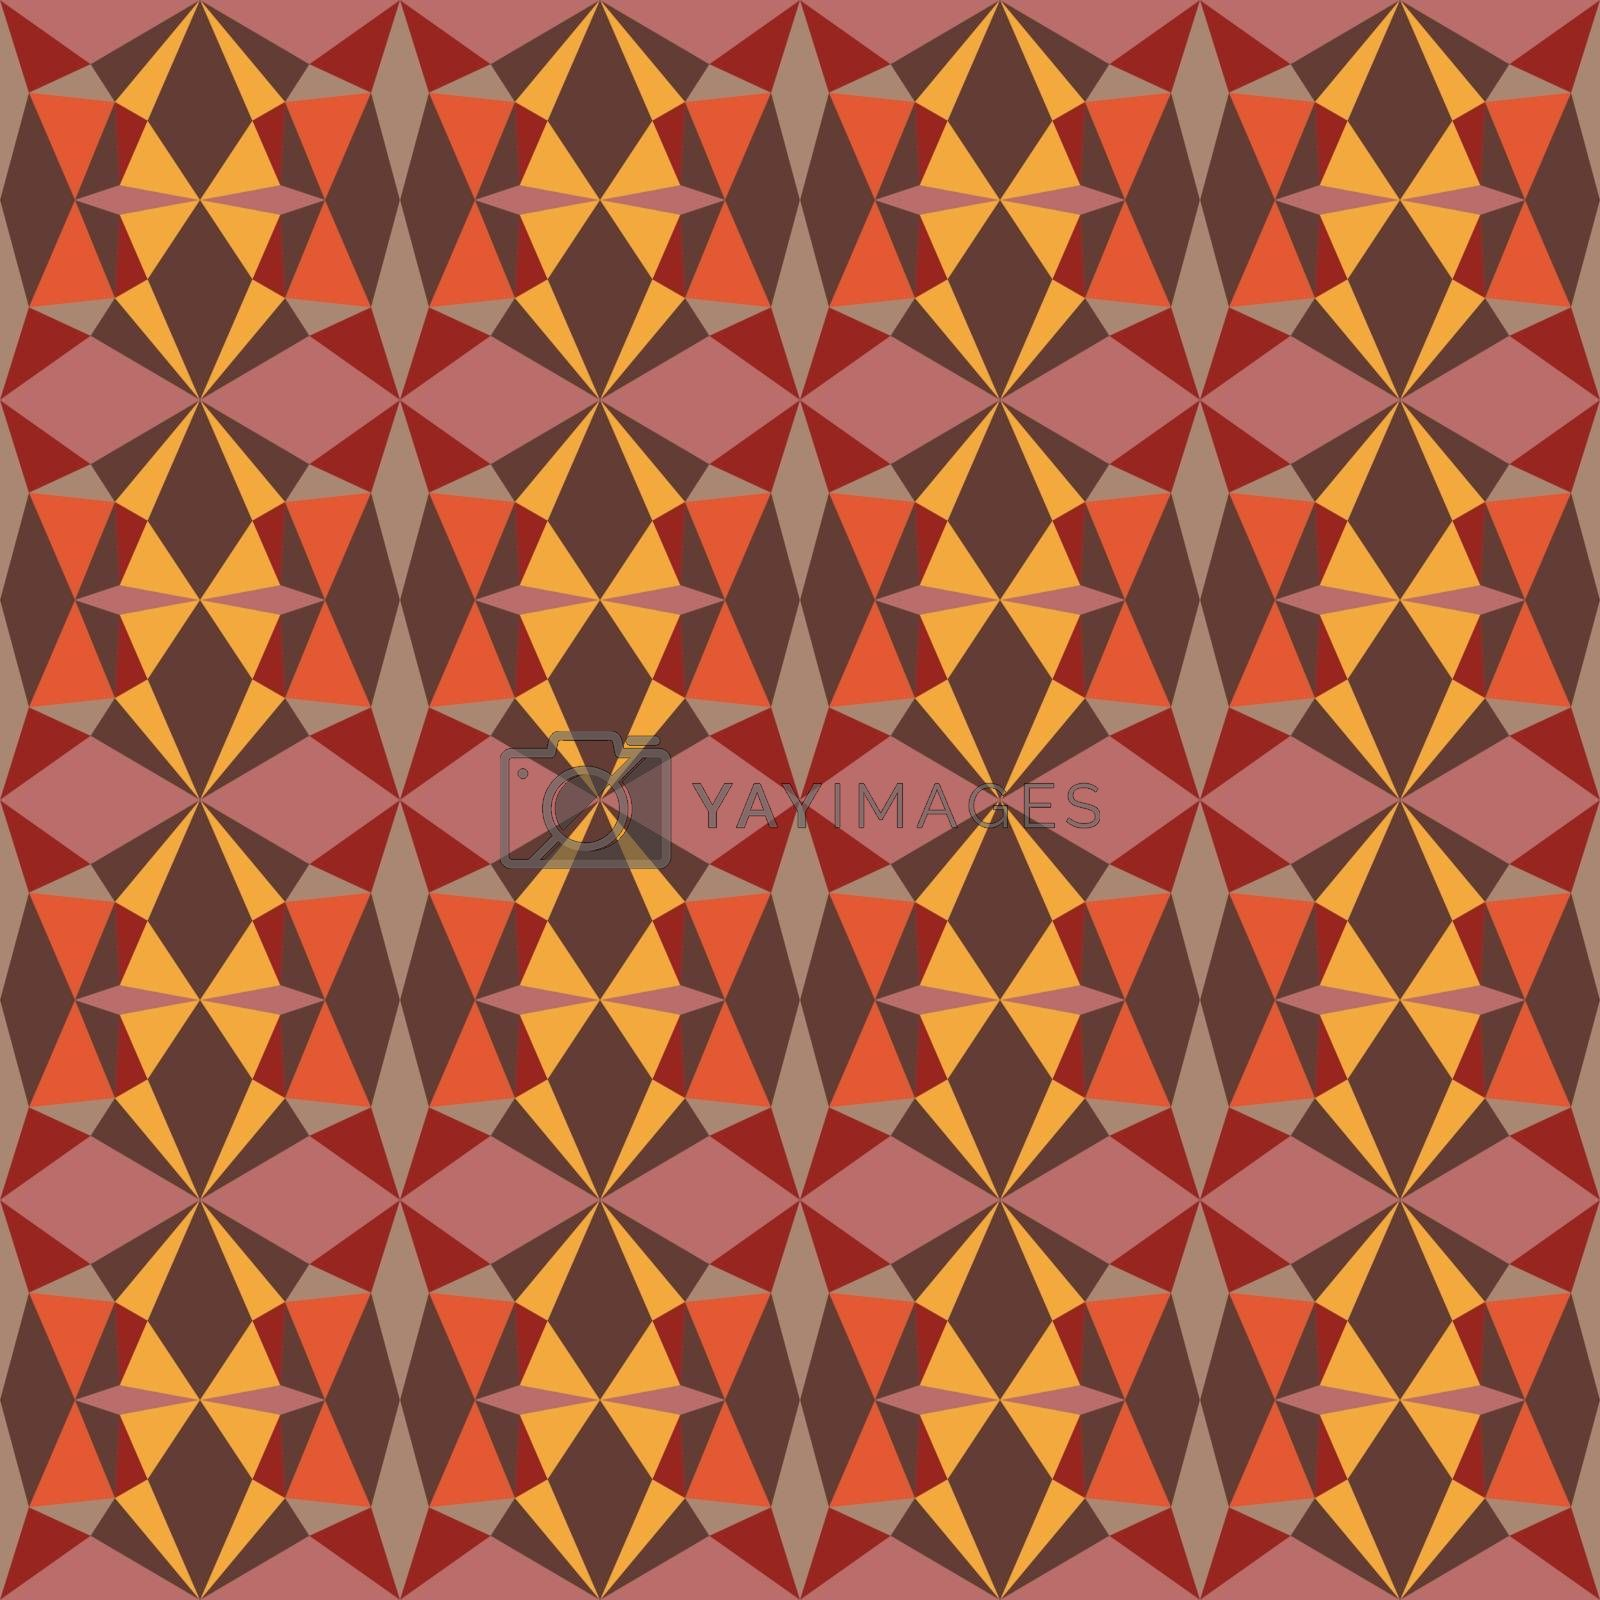 Background pattern with decorative geometric and abstract elements